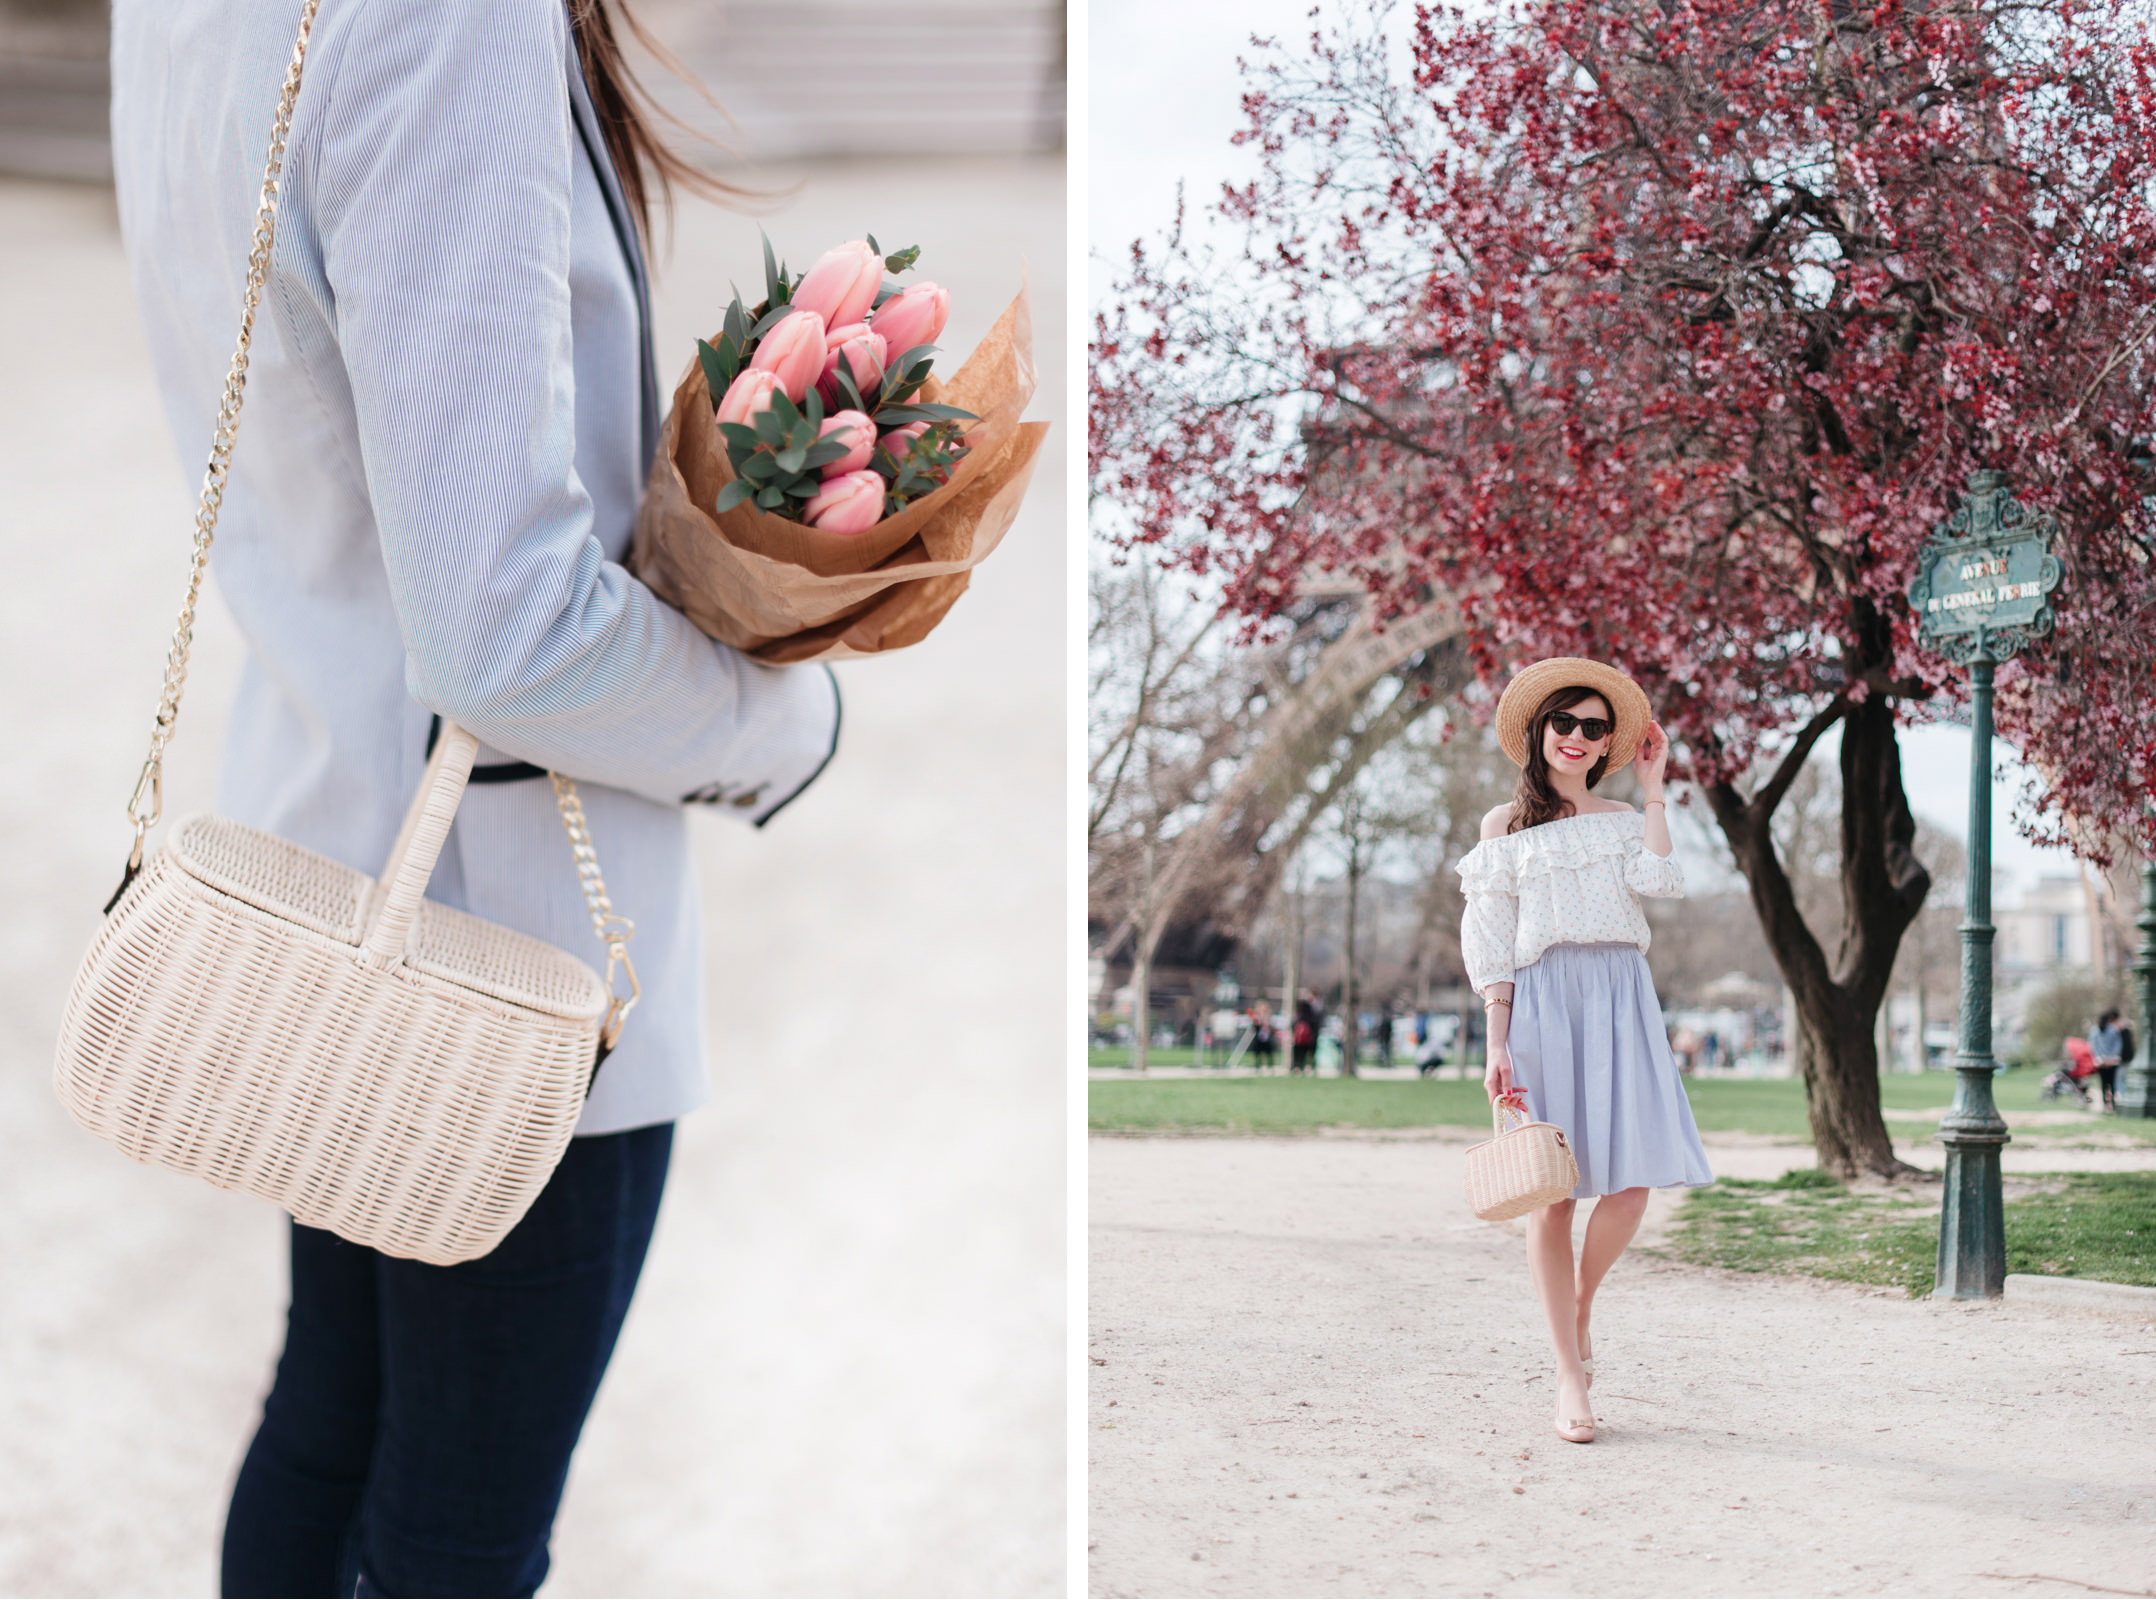 Blog-Mode-And-The-City-Lifestyle-33-paniers-printemps-ete-2